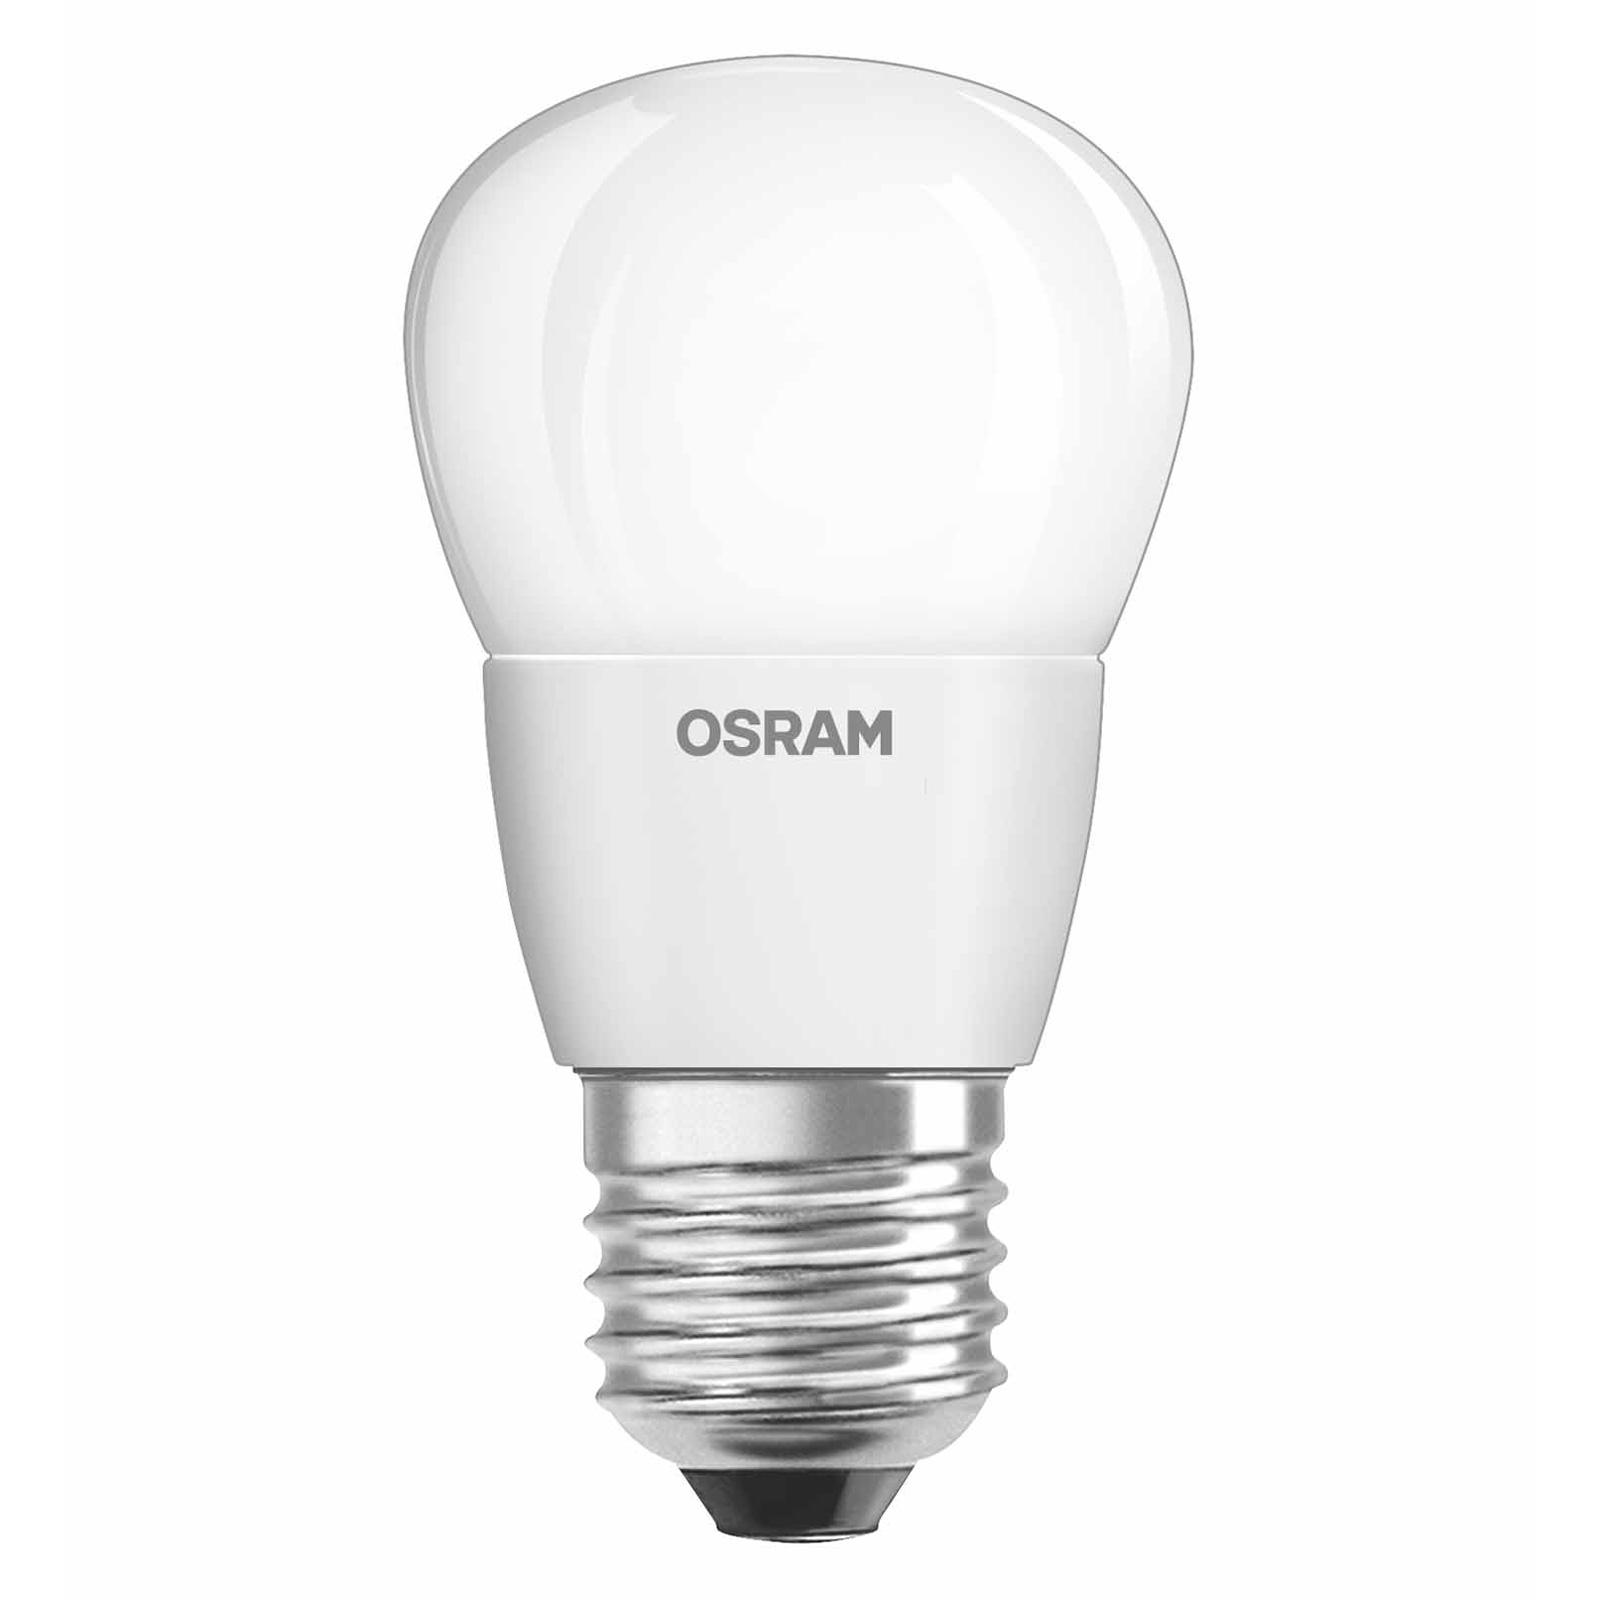 osram led superstar classic p 25 e27 3 2 w wie 25 w 250. Black Bedroom Furniture Sets. Home Design Ideas